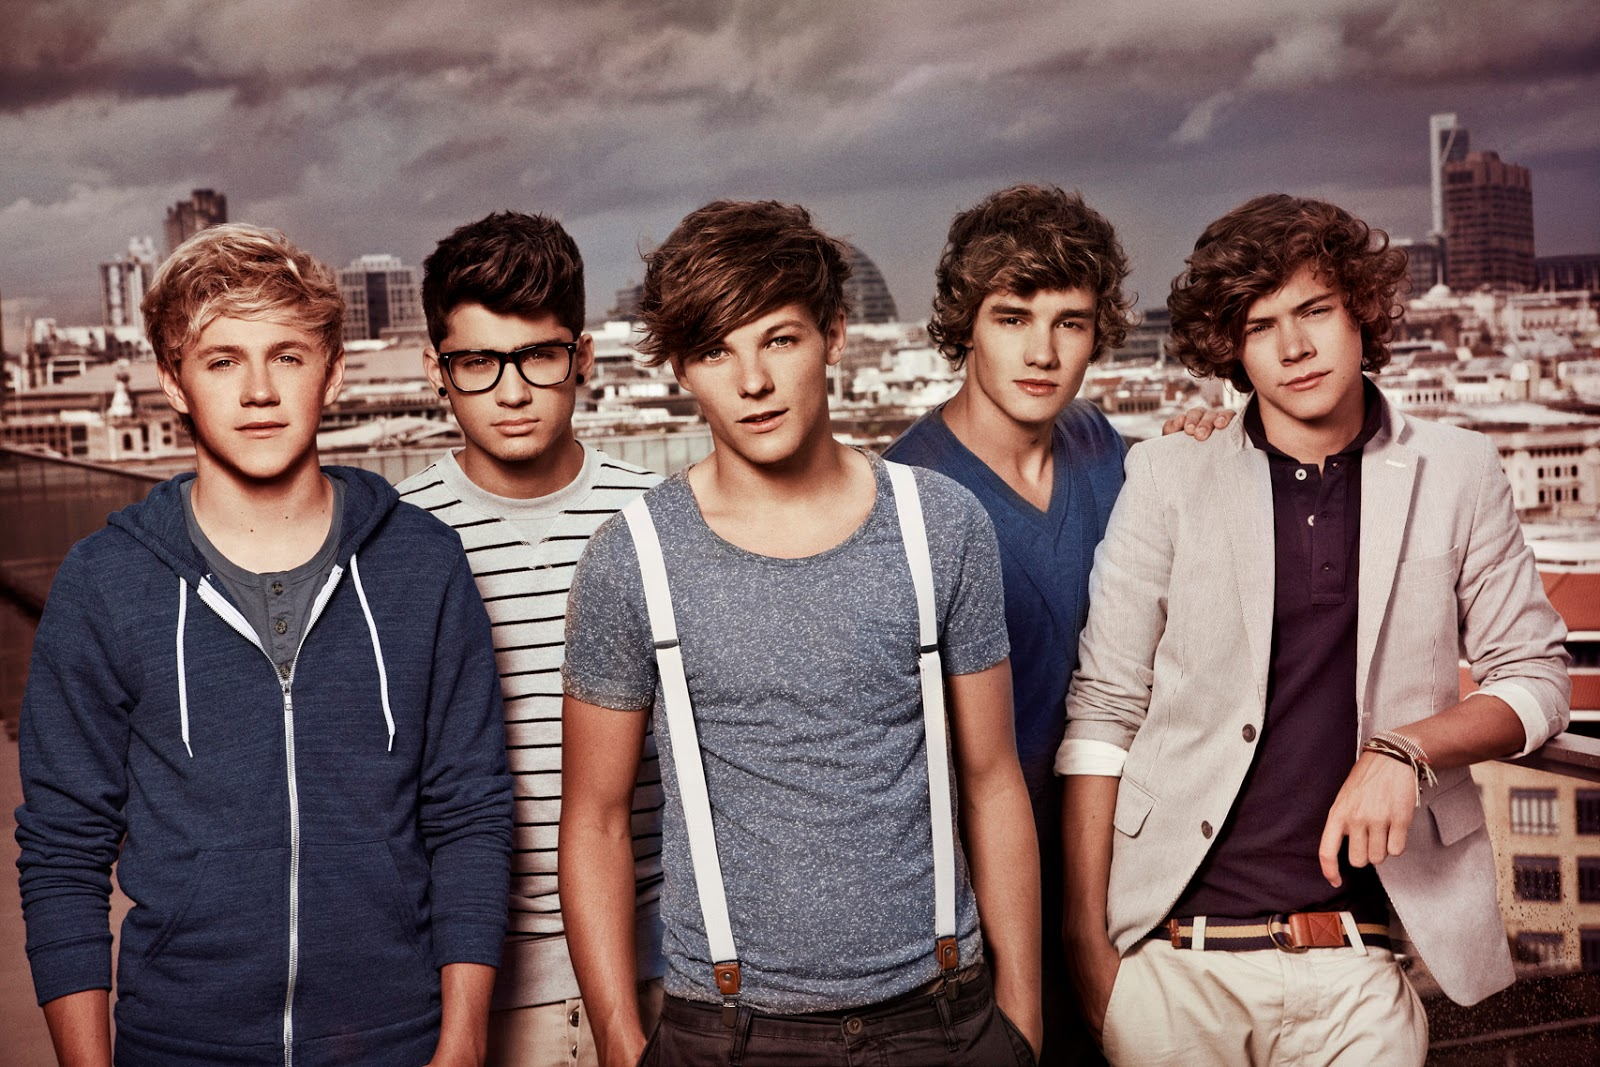 BADBOYS DELUXE: ONE DIRECTION - SINGING GROUP